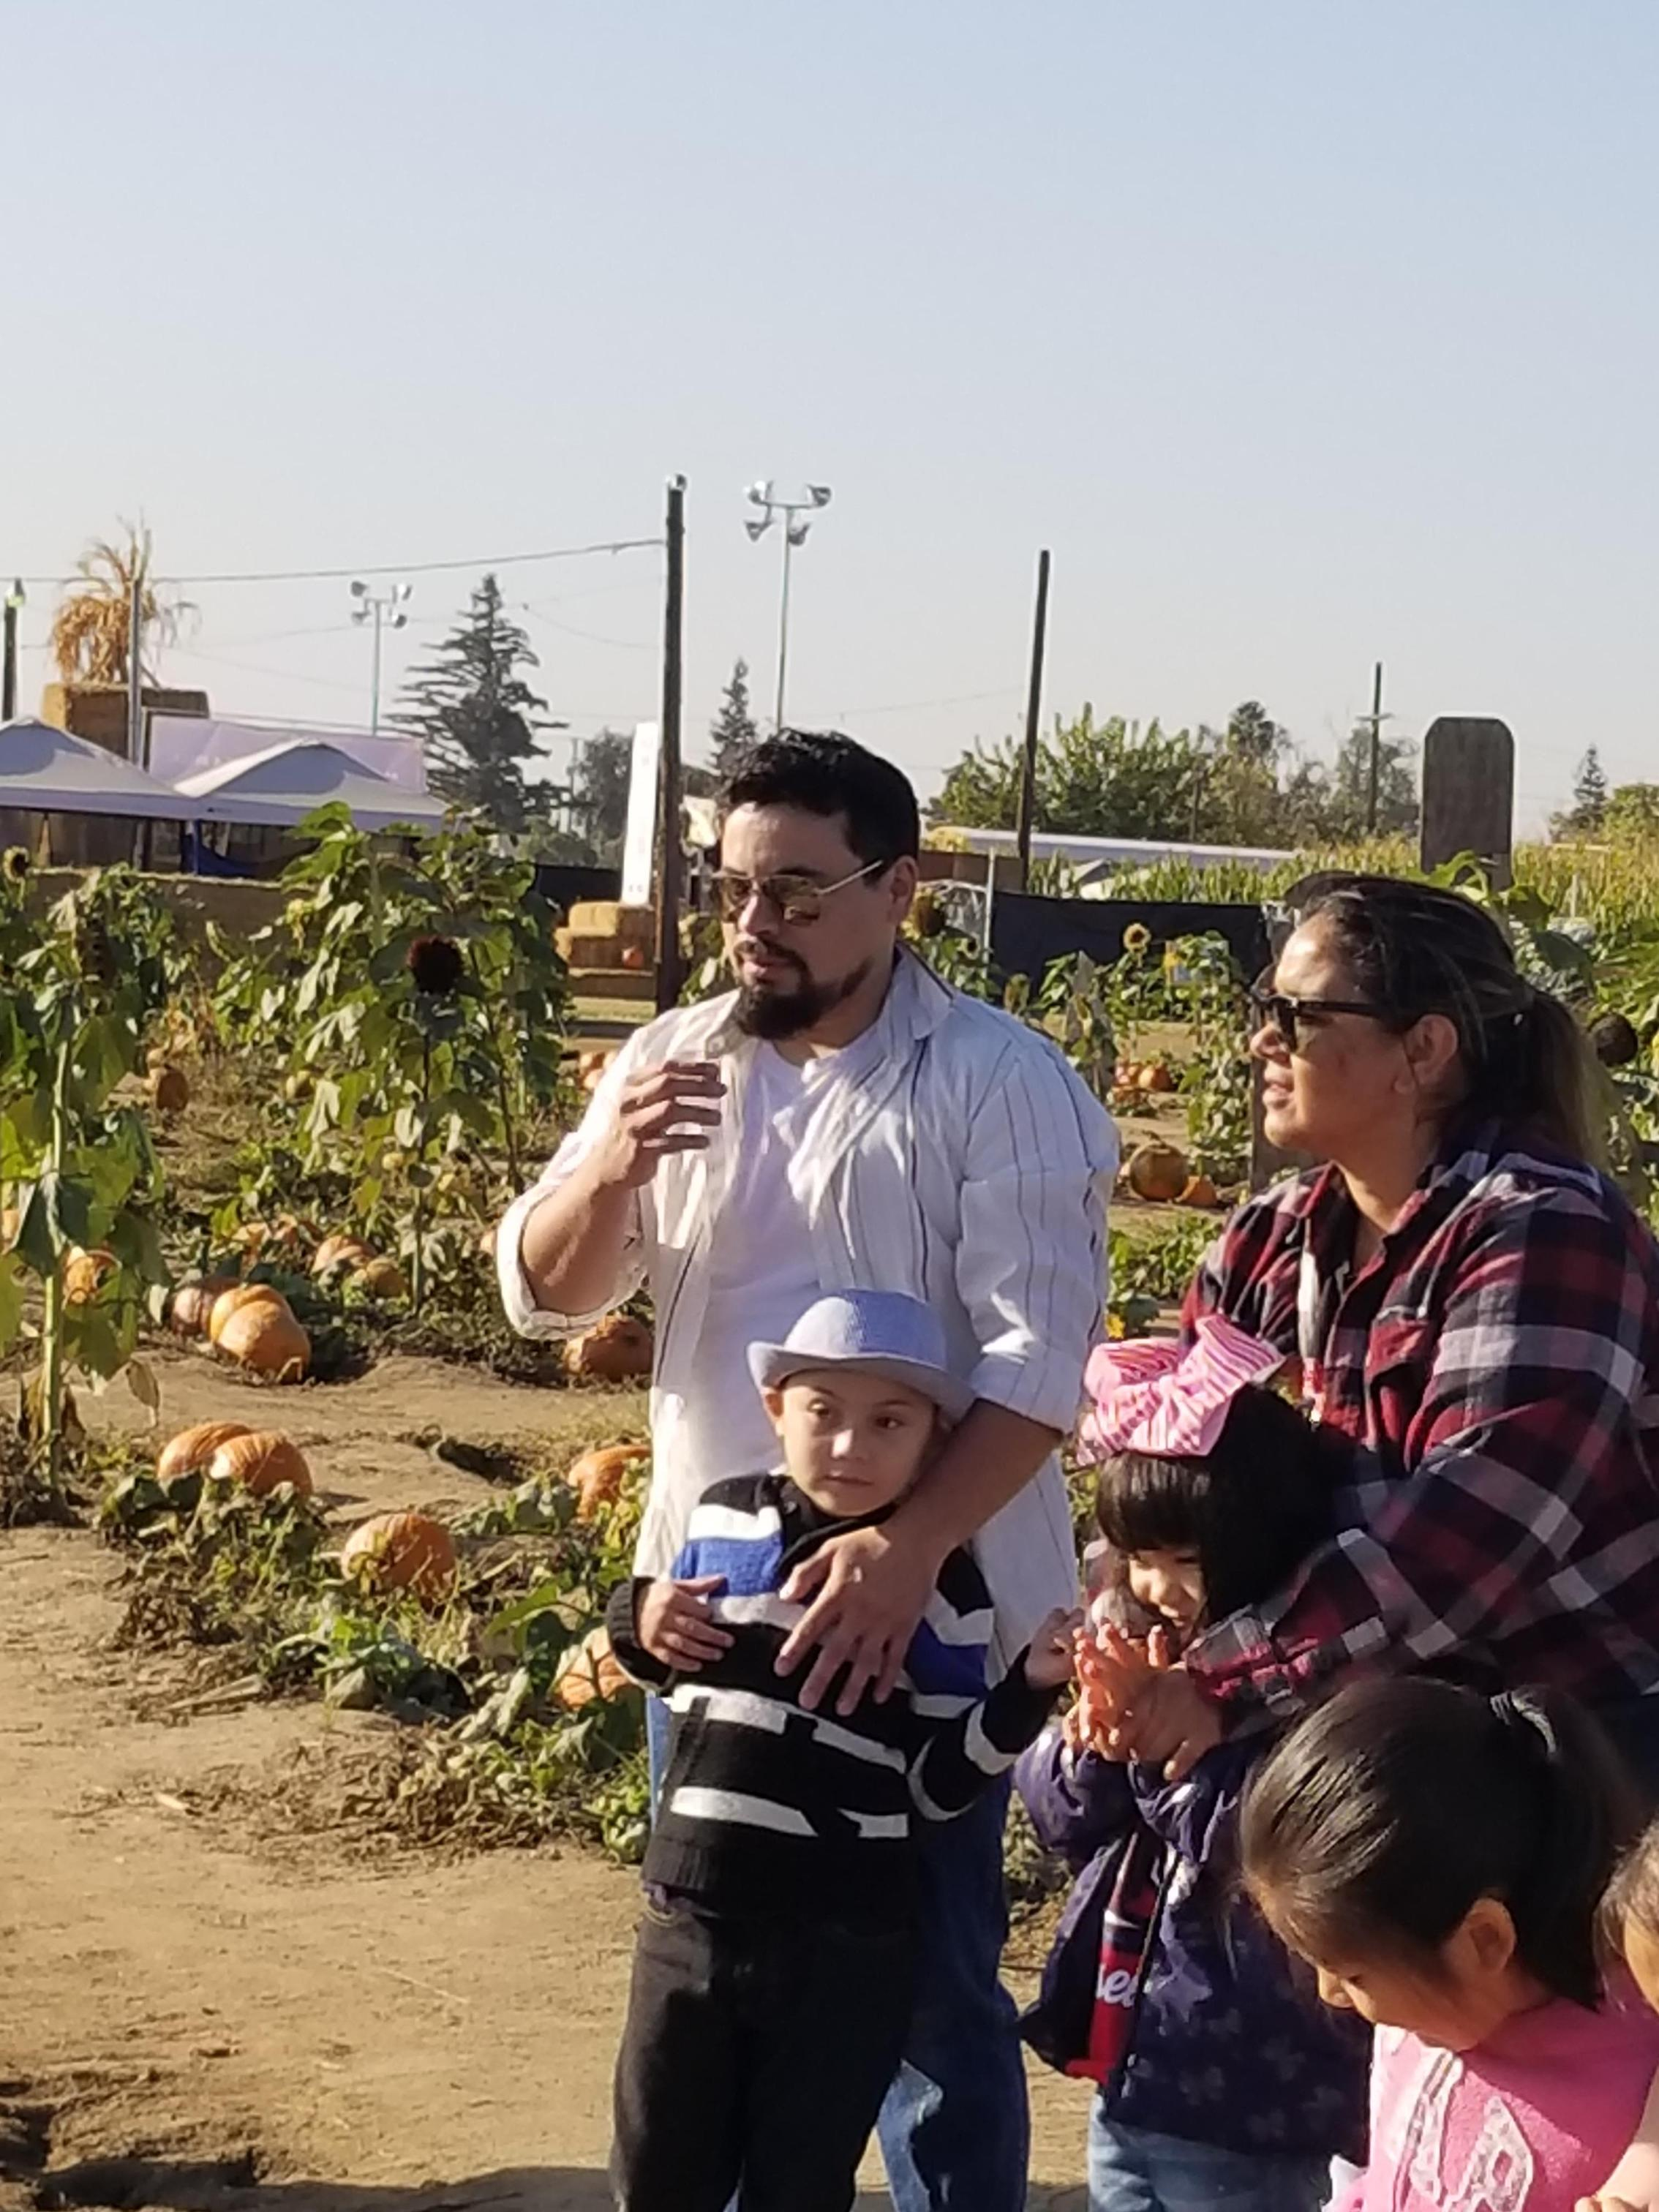 Parents and a student at the pumpkin patch.